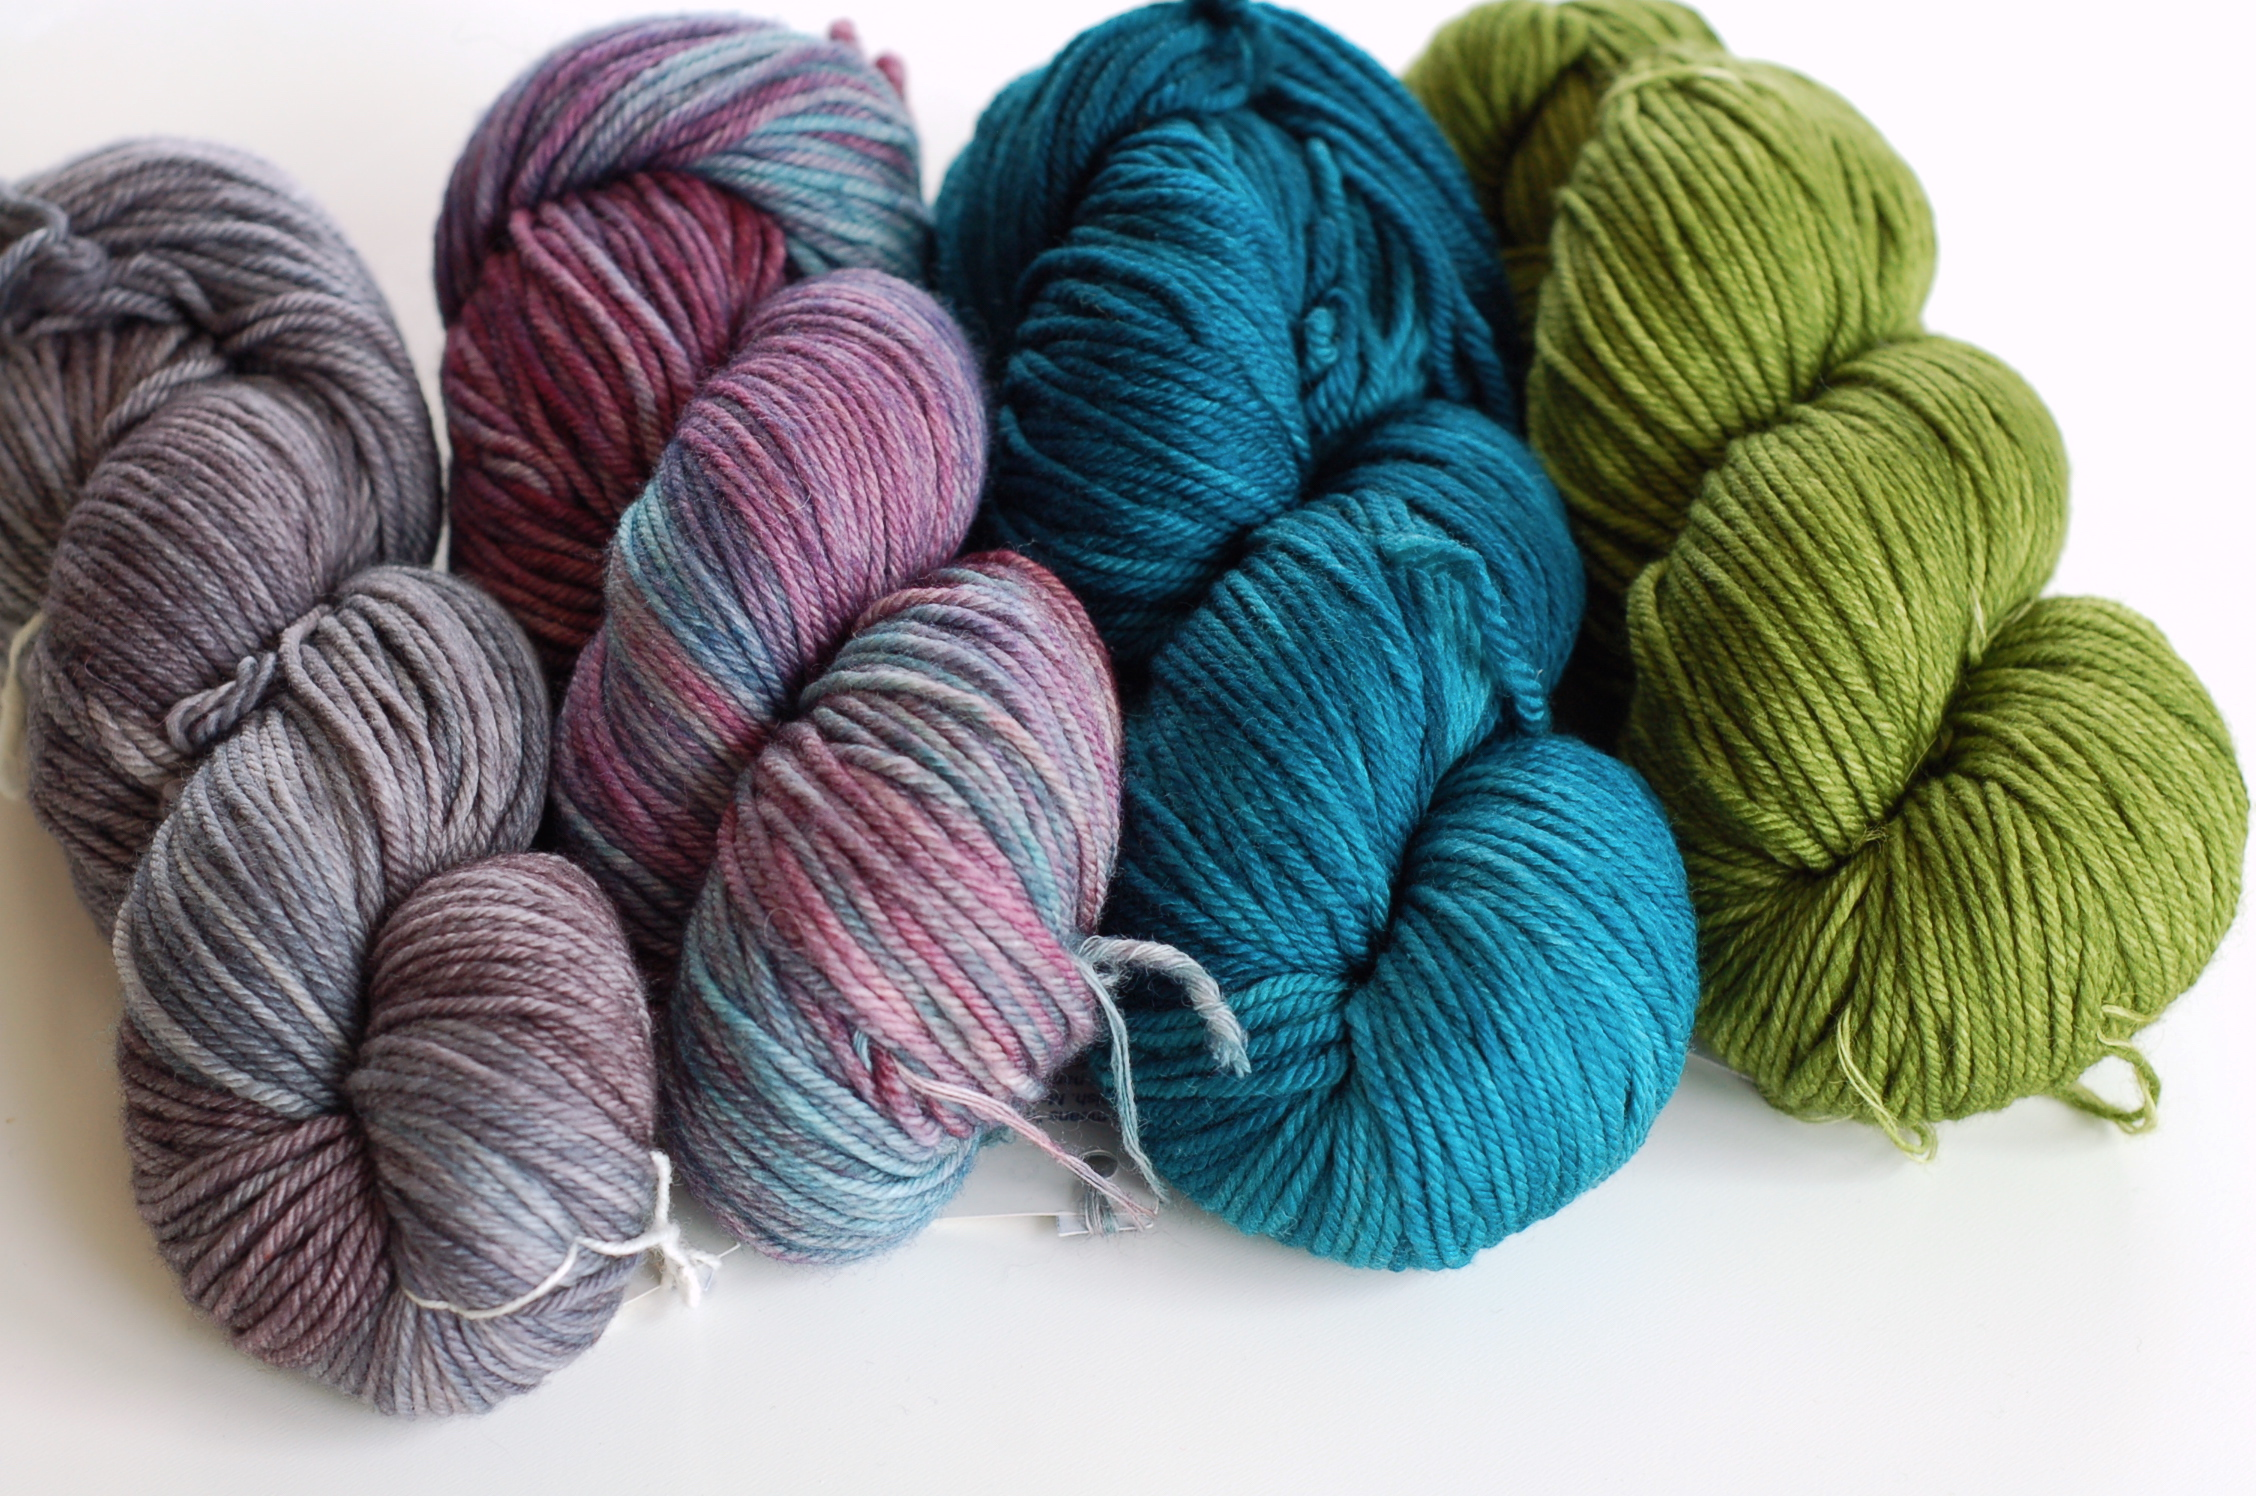 Malabrigo Rios in colorways Plomo, Lotus, Teal Feather and Lettuce